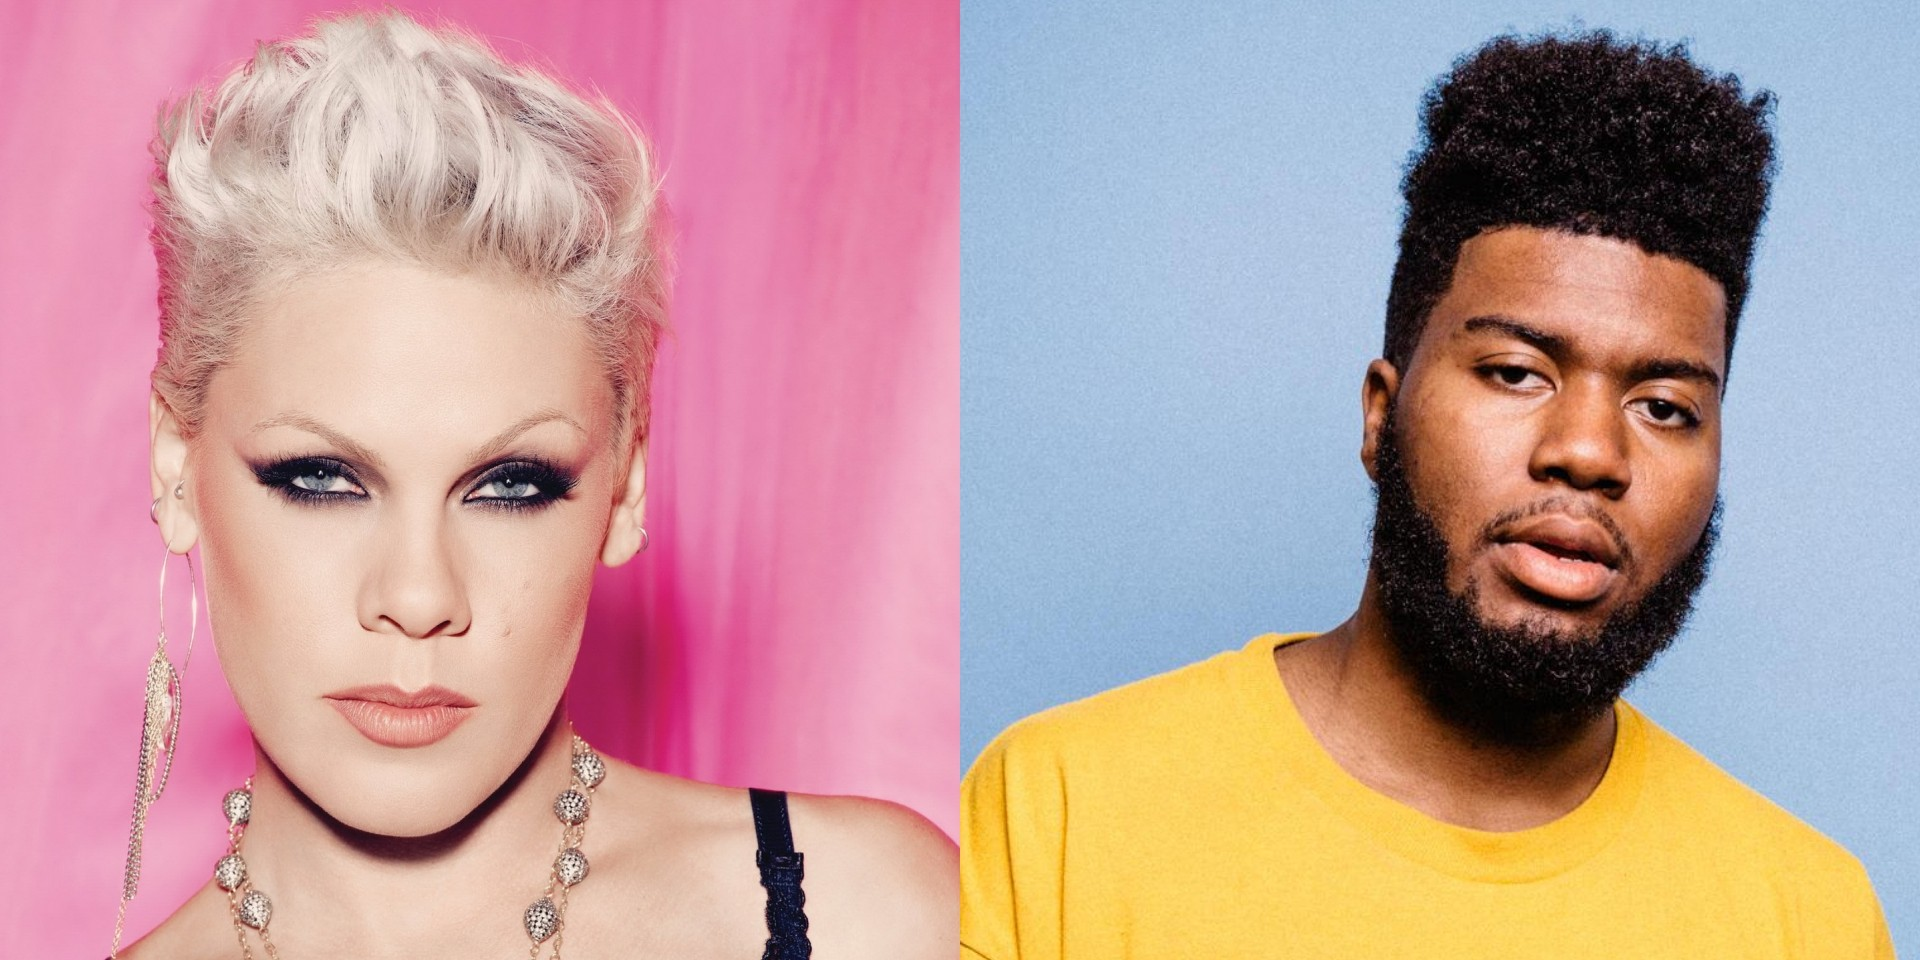 P!nk releases new single 'Hurts 2B Human' with Khalid – listen